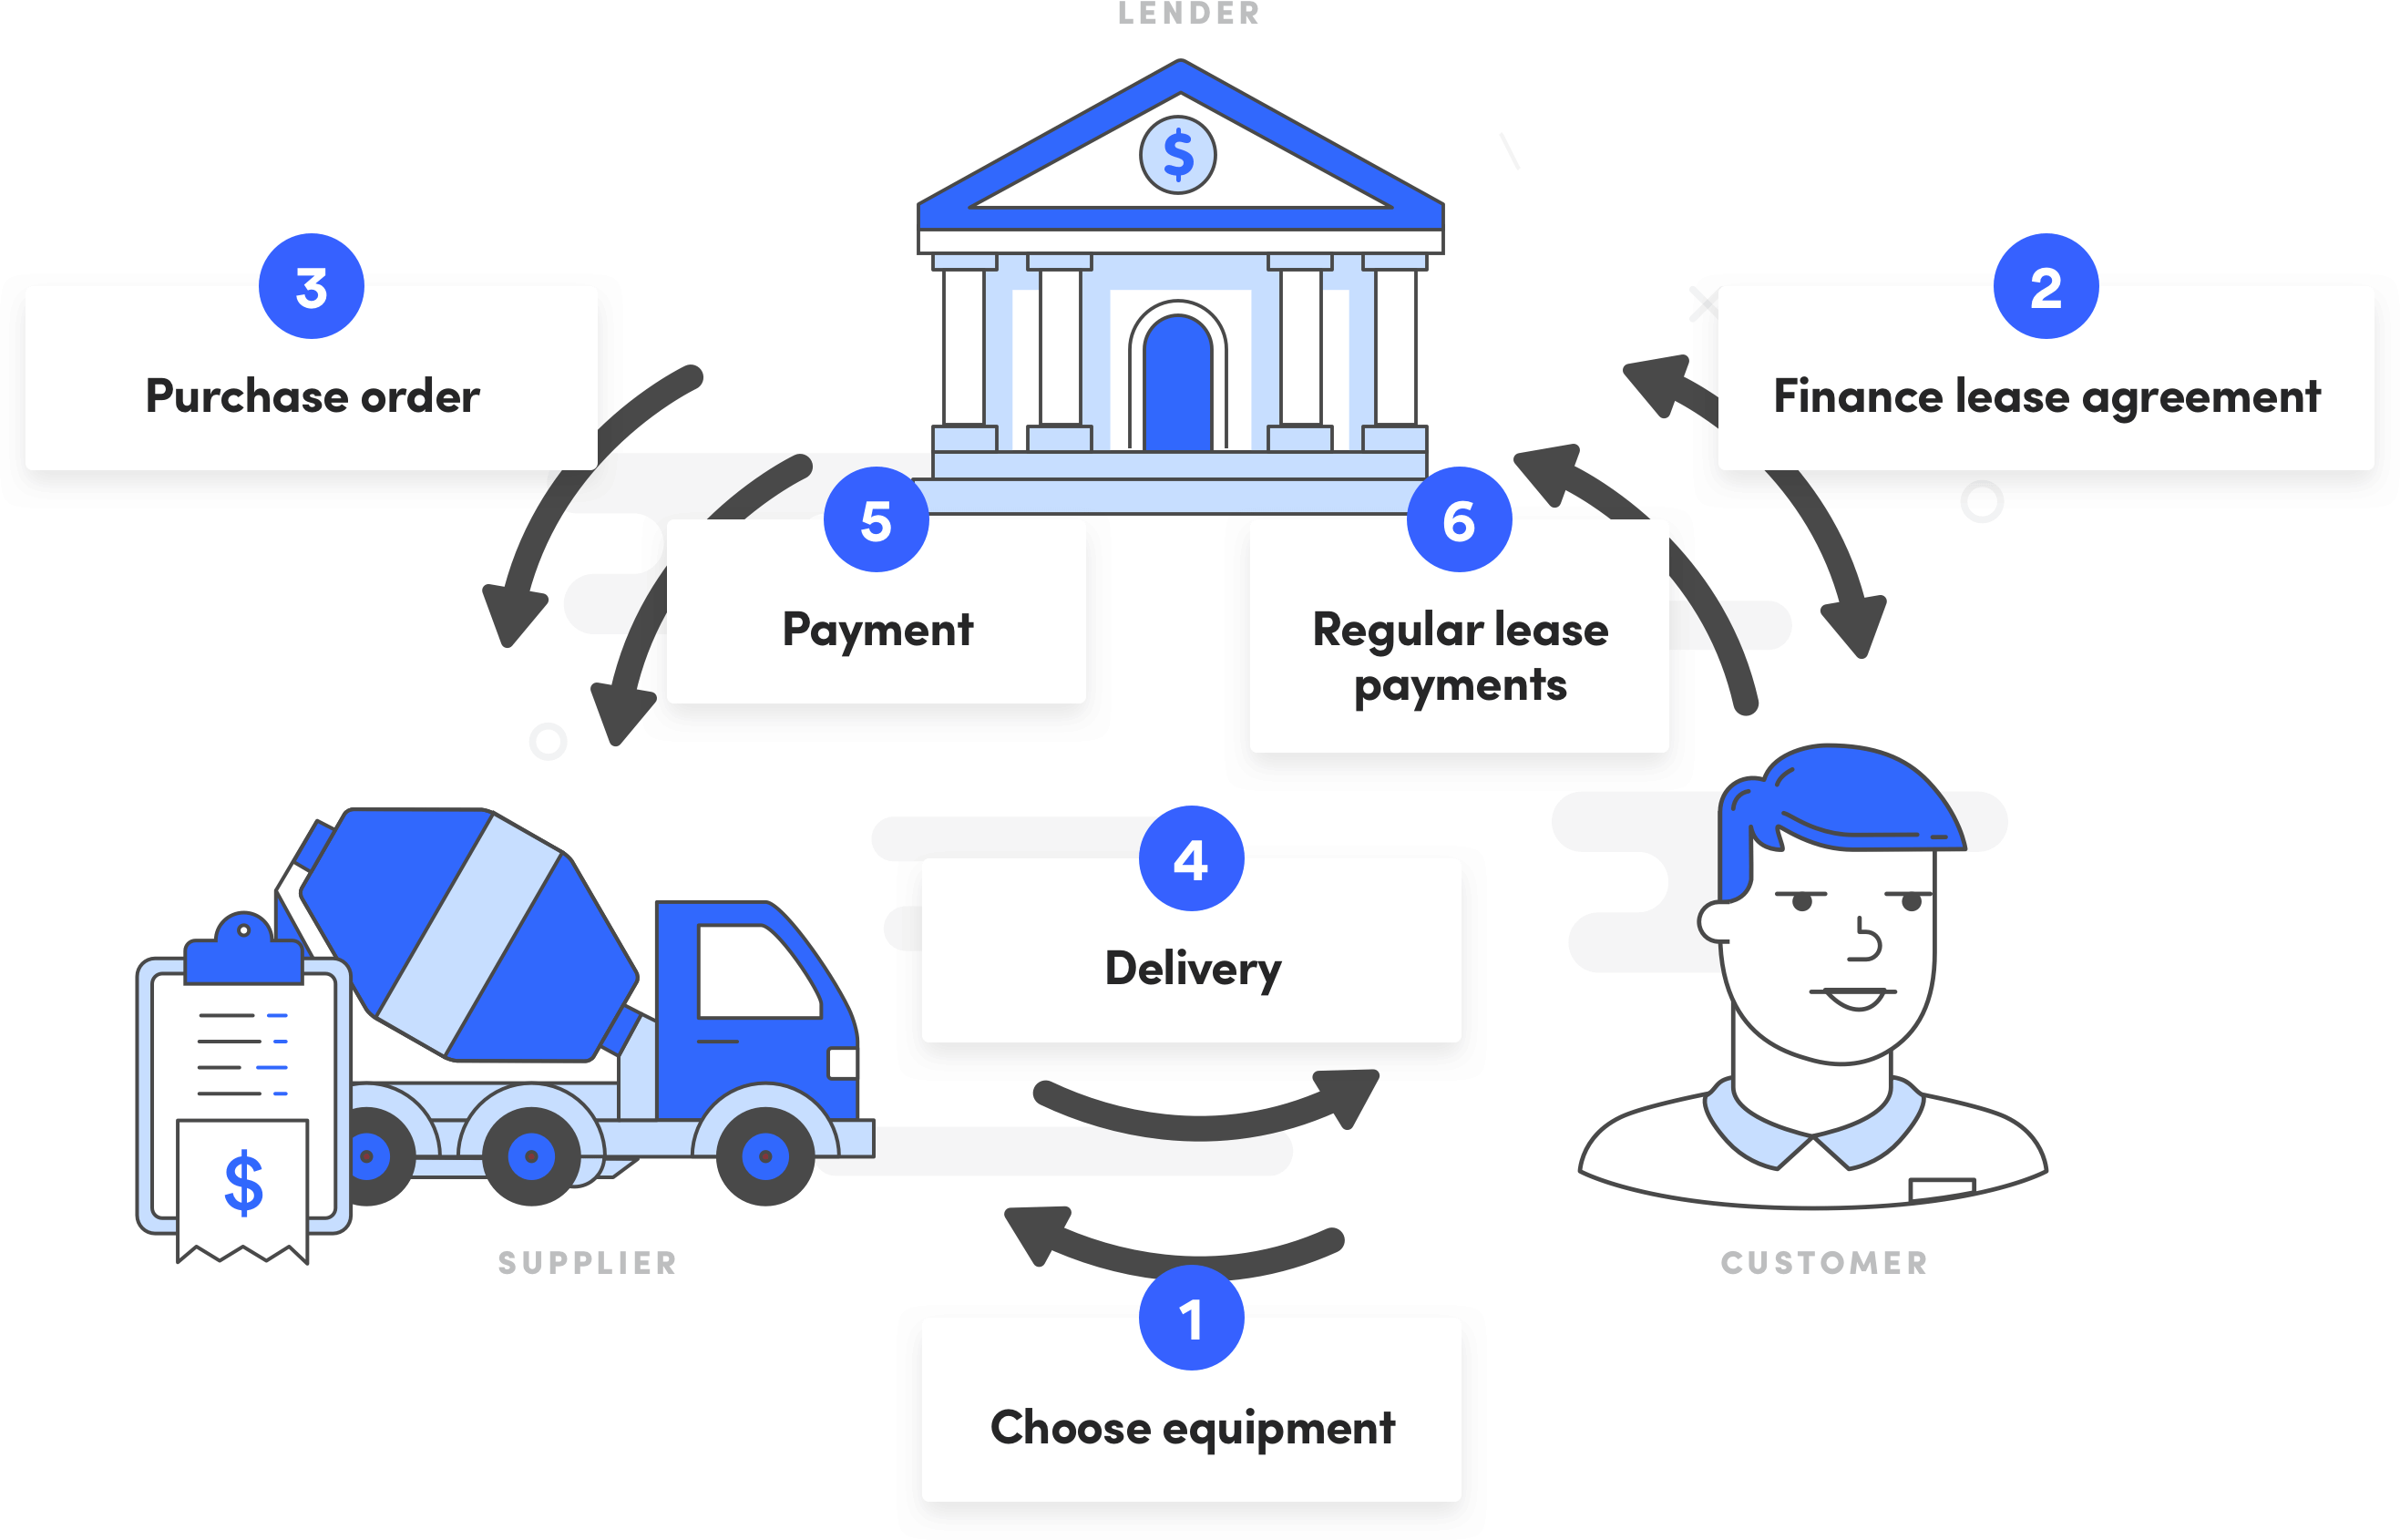 How a Finance Lease Works - Diagram